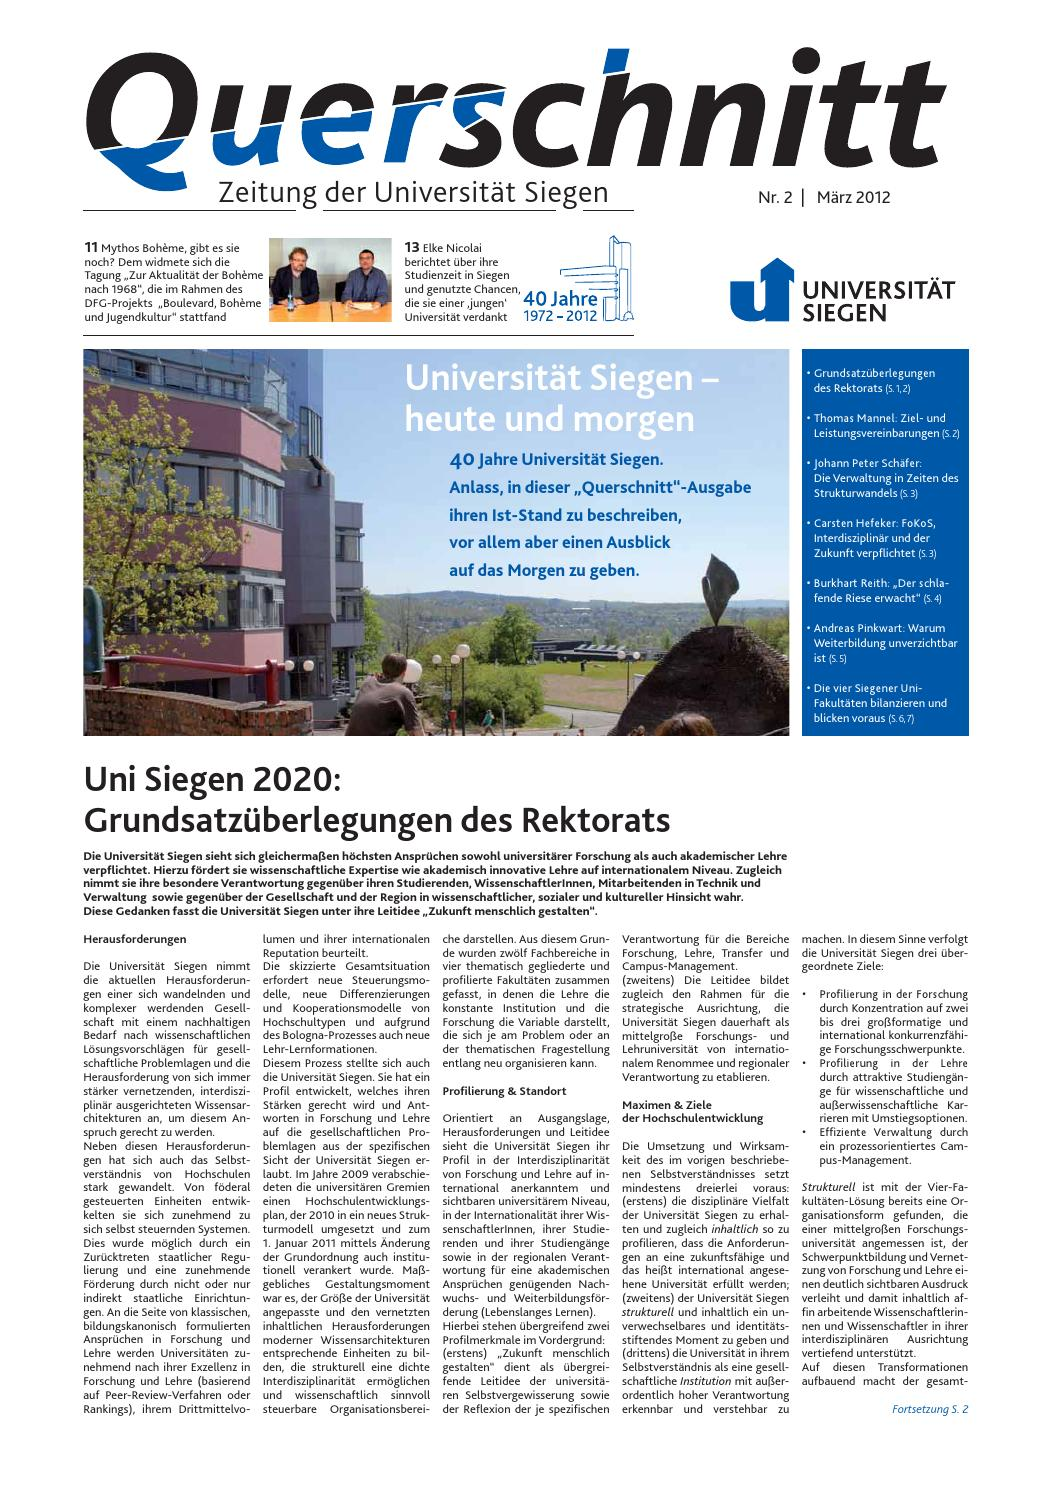 Querschnitt 2/2012 by Universität Siegen - issuu